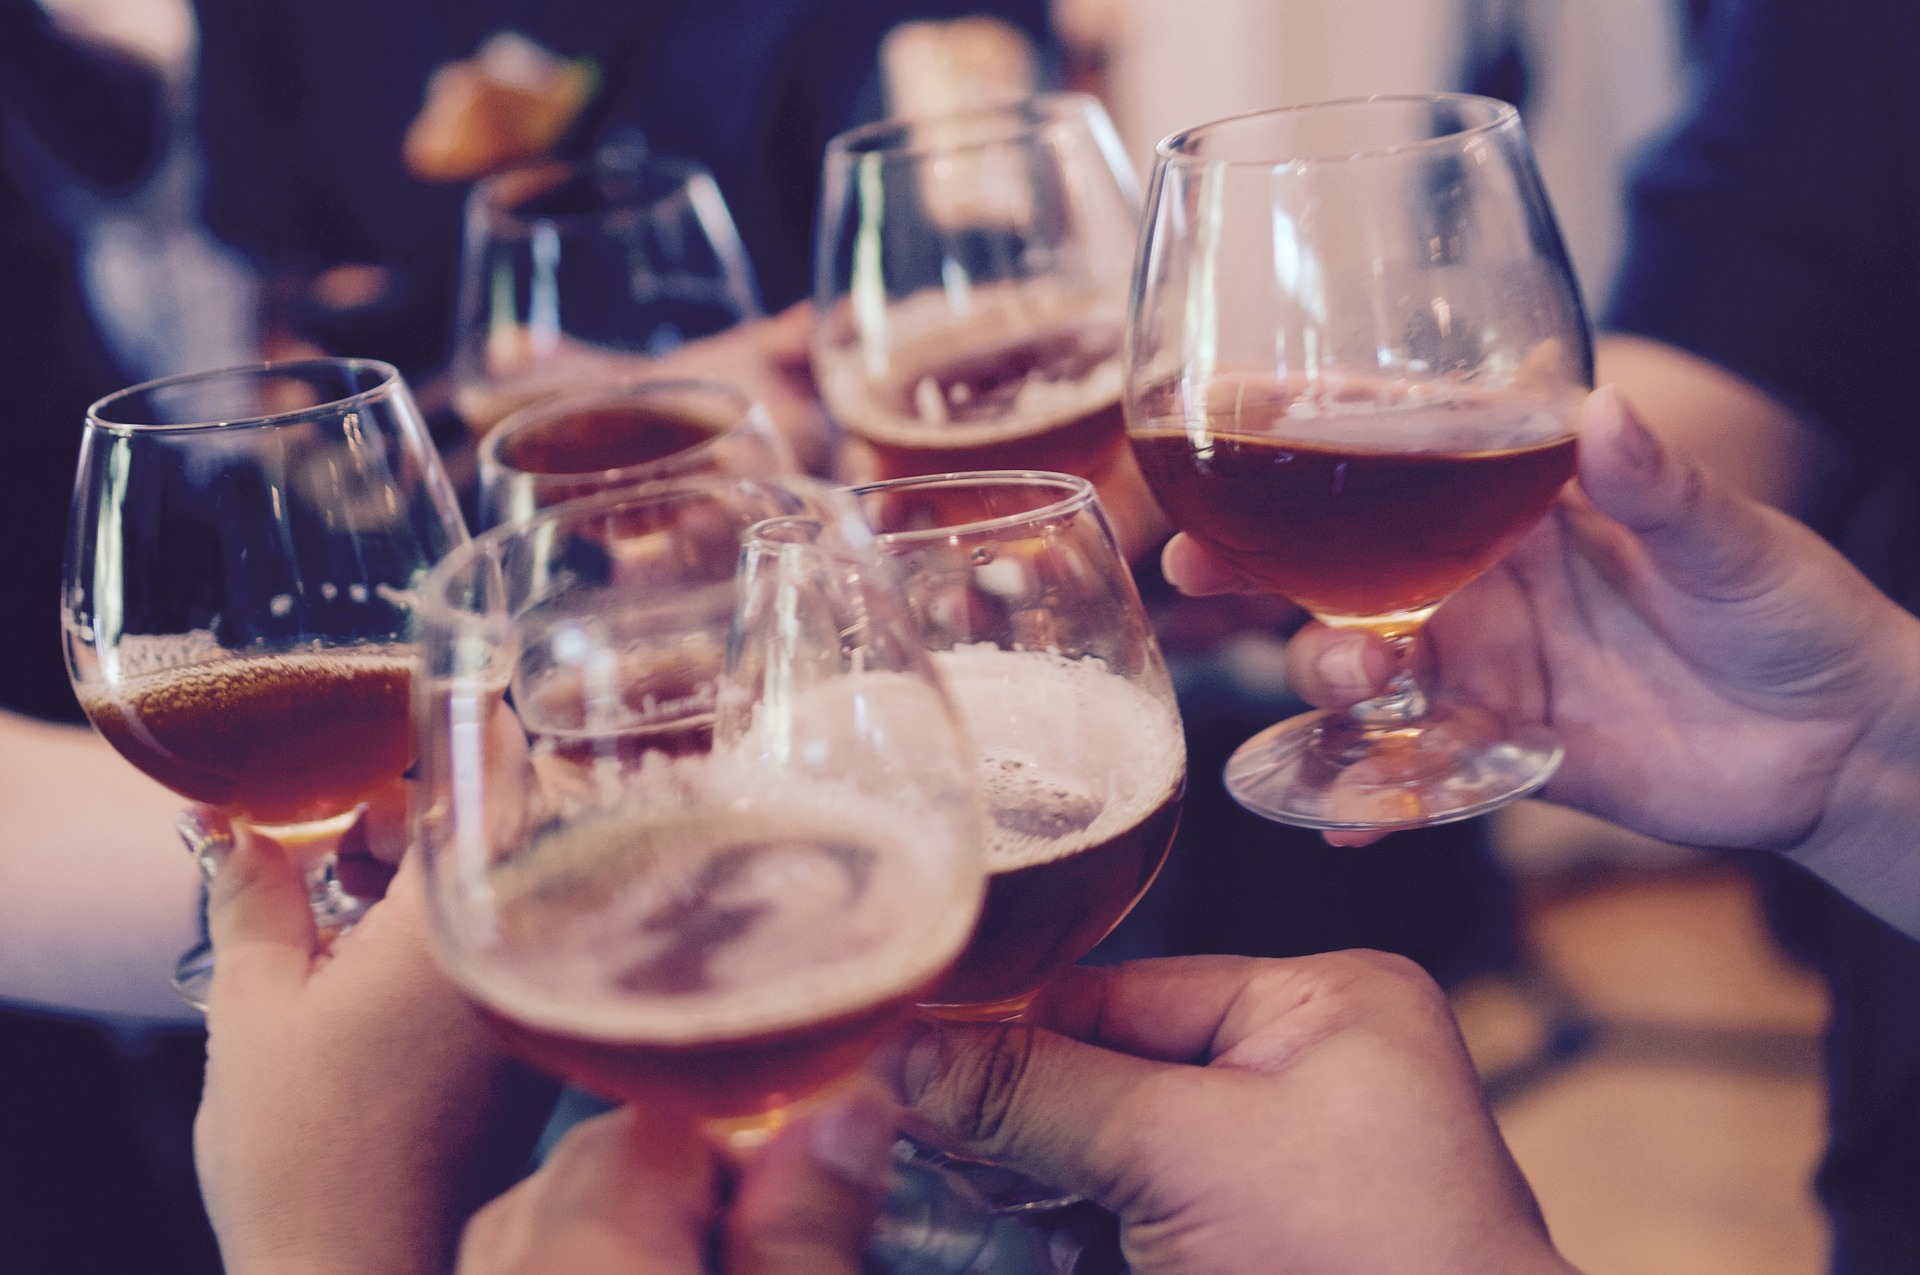 Liquor license costs by state, 2018 - Ballotpedia